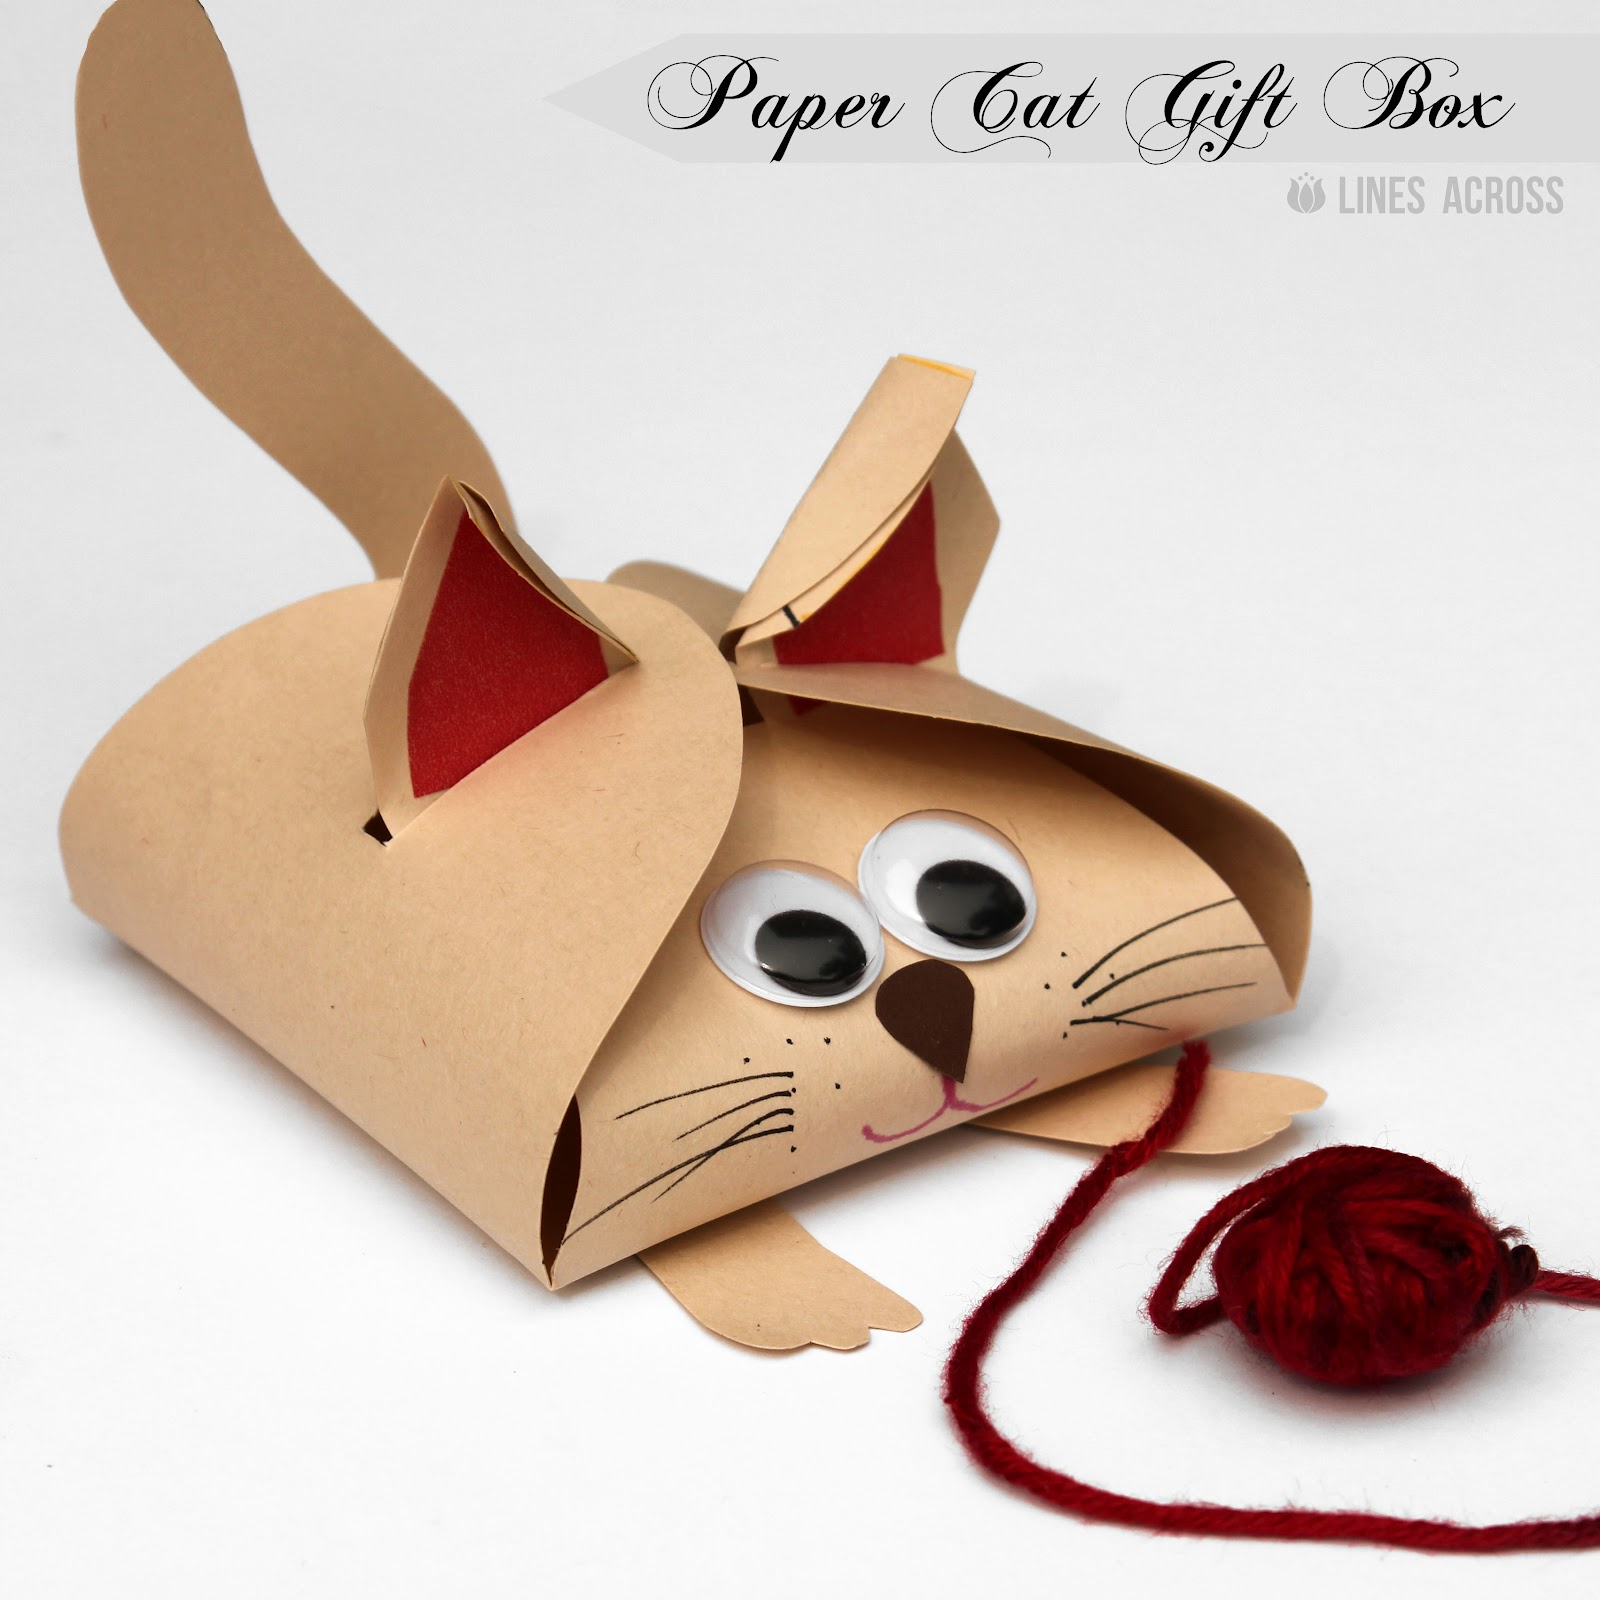 Dog and Cat Paper Gift Boxes Lines Across – Paper Gift Boxes Templates